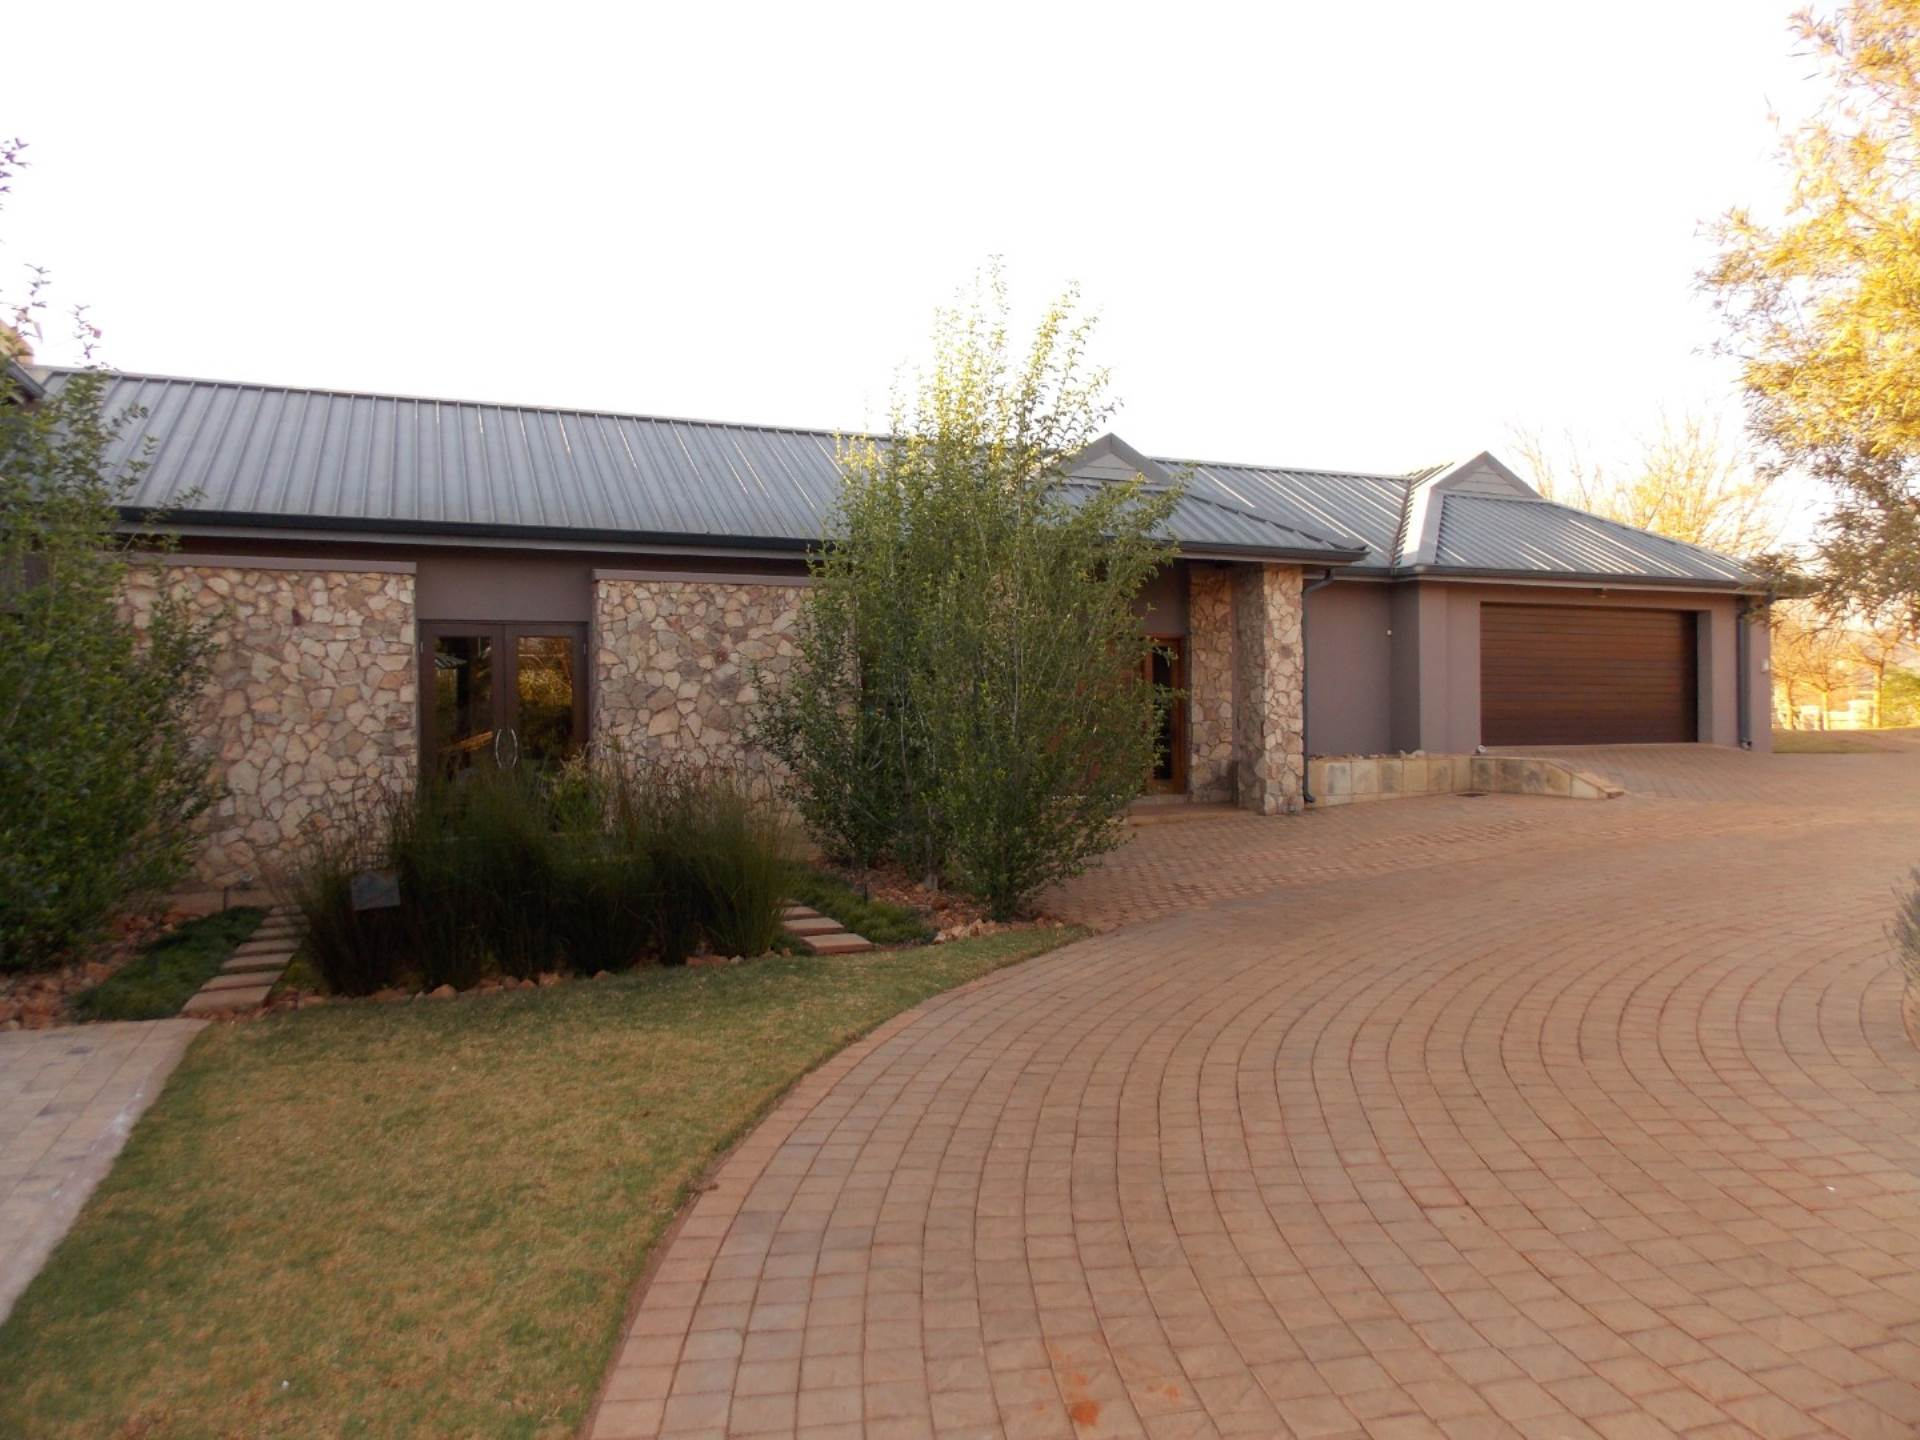 Rietvlei View Country Estate property for sale. Ref No: 13675032. Picture no 2